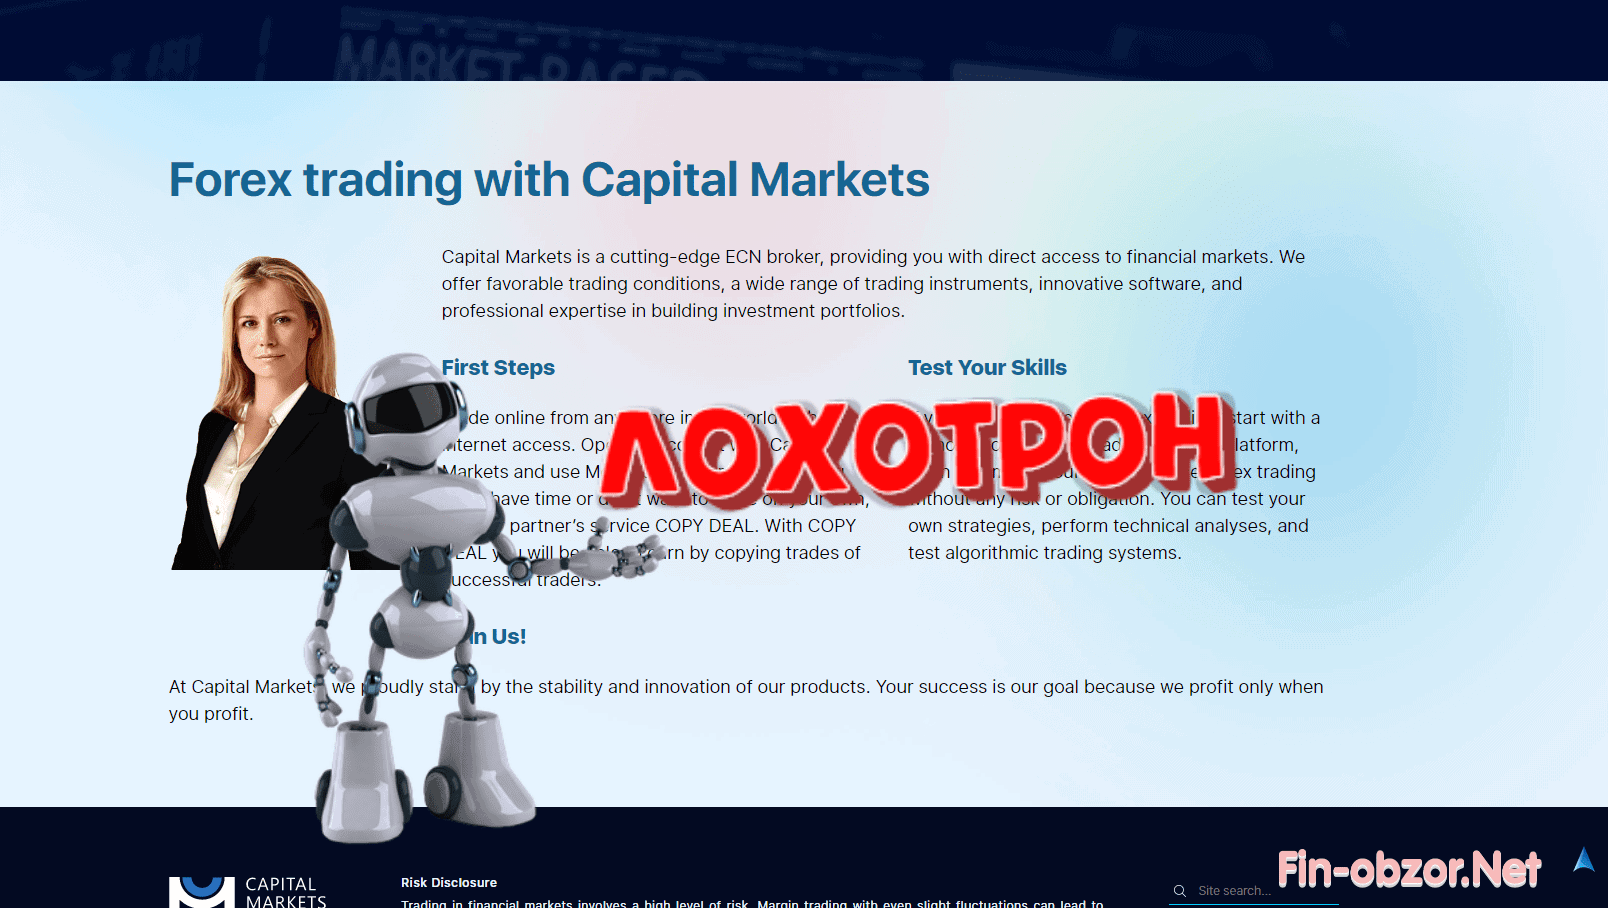 Брокер CapitalMarkets - отзывы о capital-markets.com